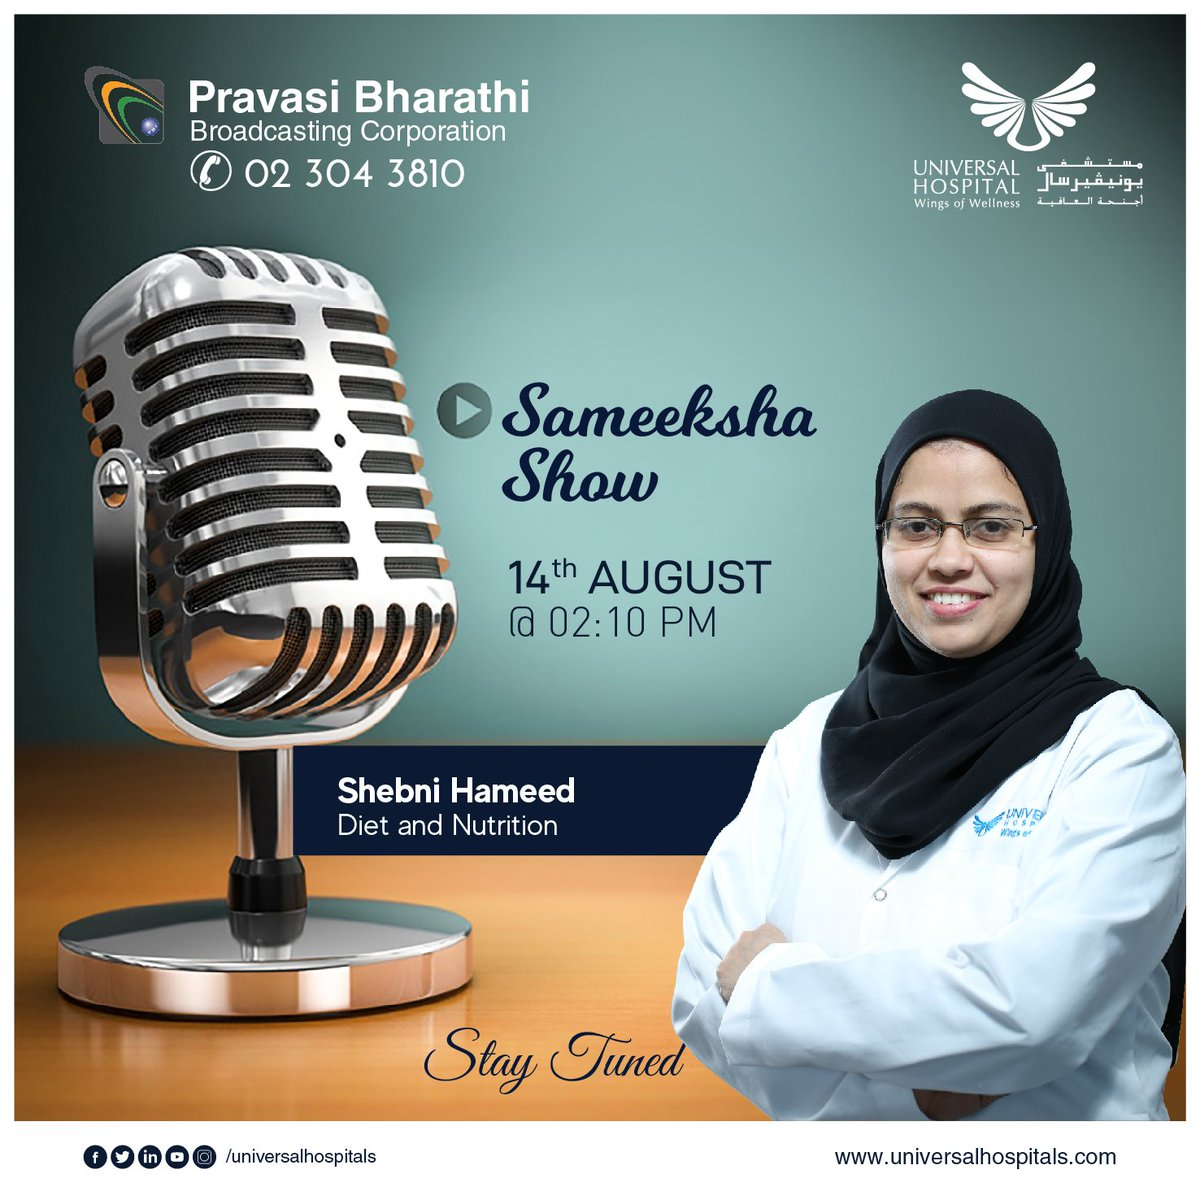 #UniversalMarketing  Tune in Today, 14th August at 02:10 PM on Pravasi Bharathi Radio 810 AM, Sameeksha show, featuring Shebini Hameed, Dietitian at Universal Hospital - Abu Dhabi.  Call to ask your queries - 02 304 3810 CALL UNIVERSAL TOLL-FREE: 800 555 555  #RadioTalk